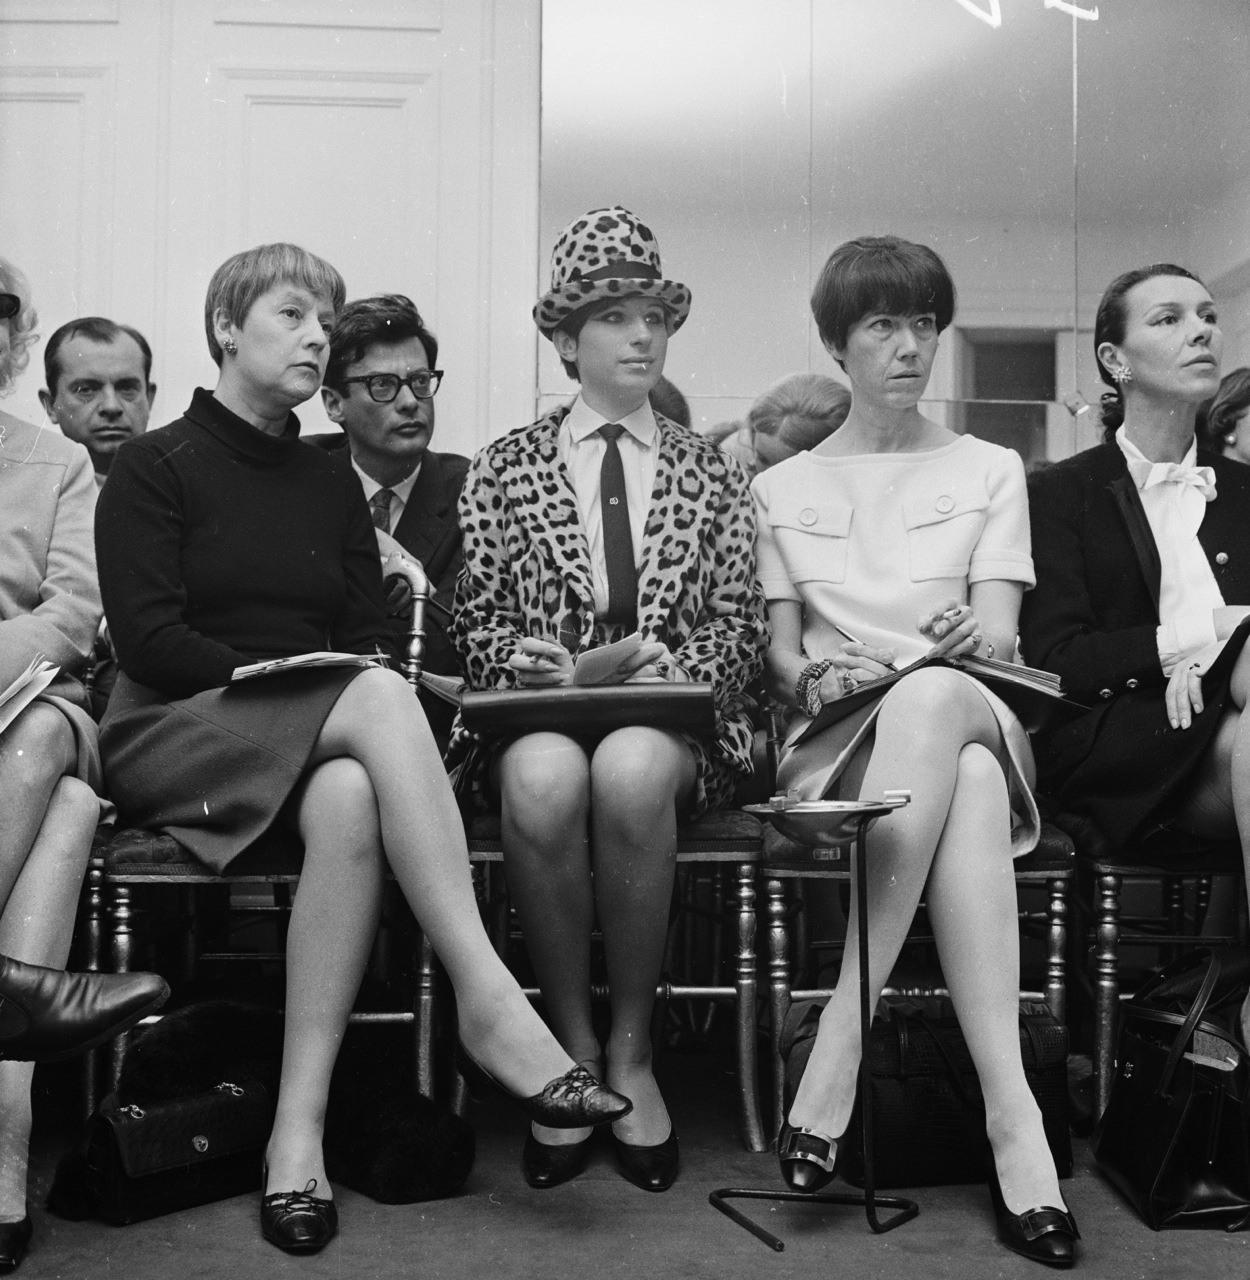 Paris, like Barbra Streisand sticking out like a sore thumb in leopard at a 1966 Chanel show